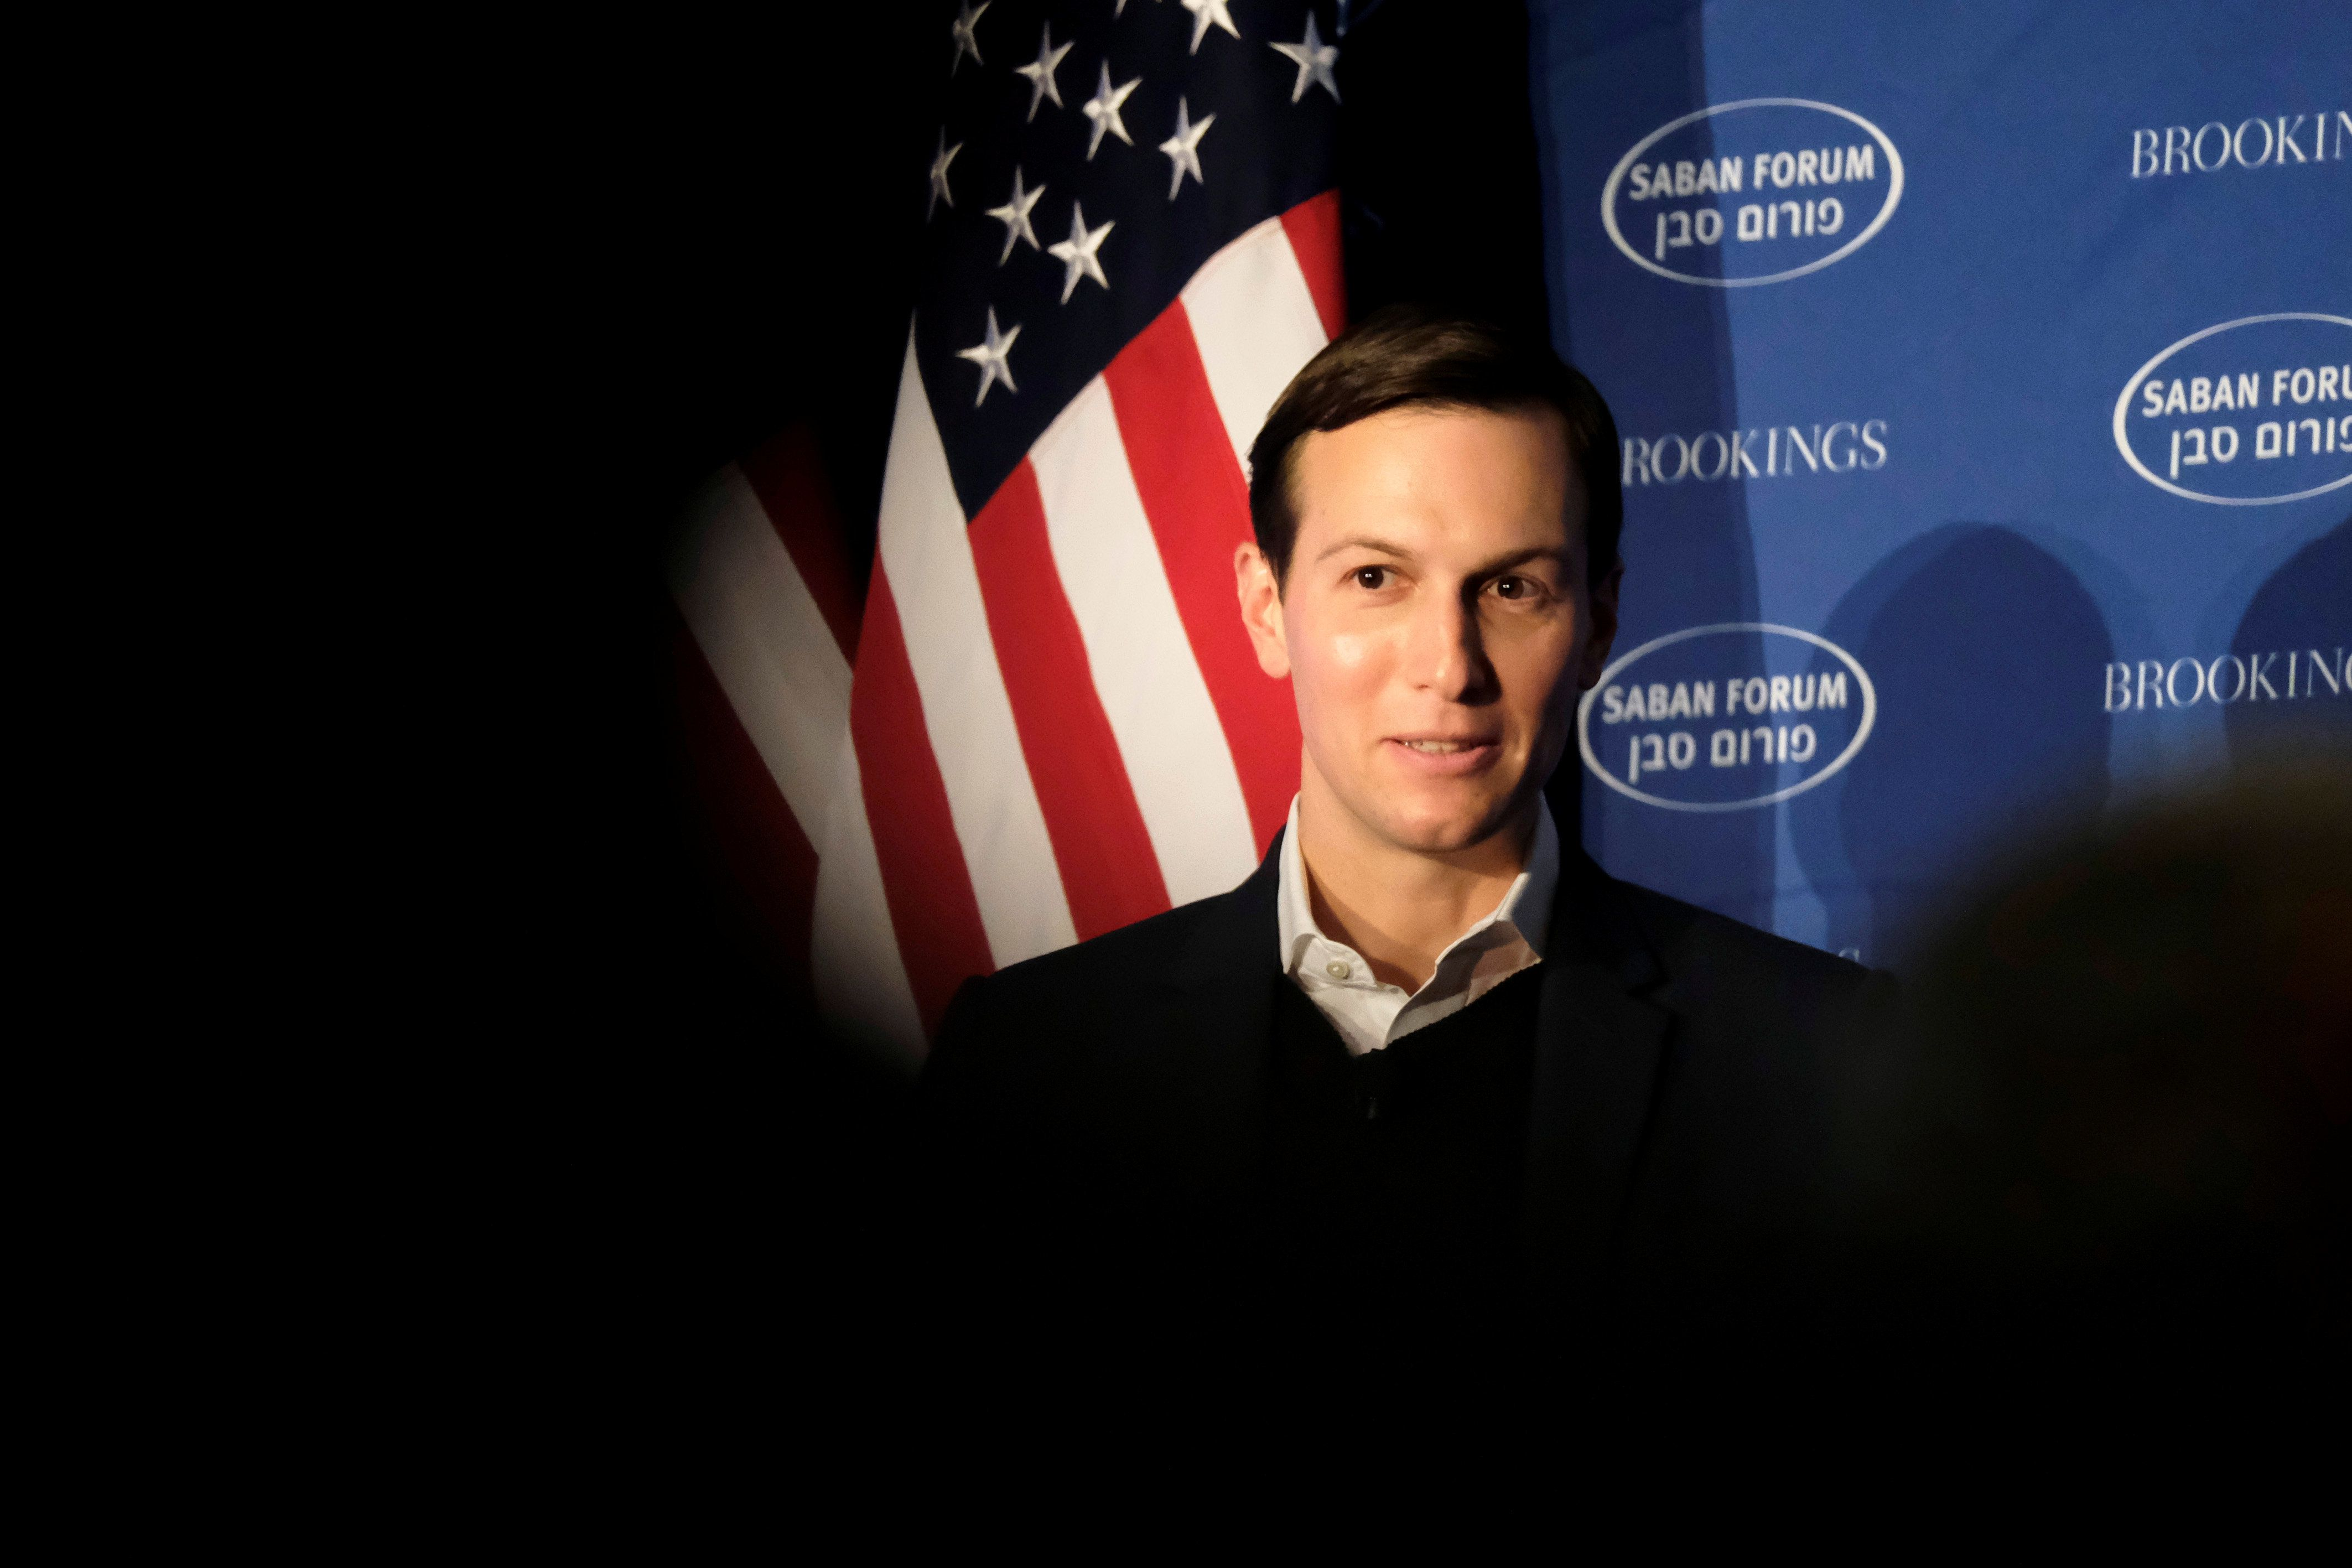 White House senior adviser Jared Kushner delivers remarks on the Trump administration's approach to the Middle East region at the Saban Forum in Washington, U.S., December 3, 2017. REUTERS/James Lawler Duggan